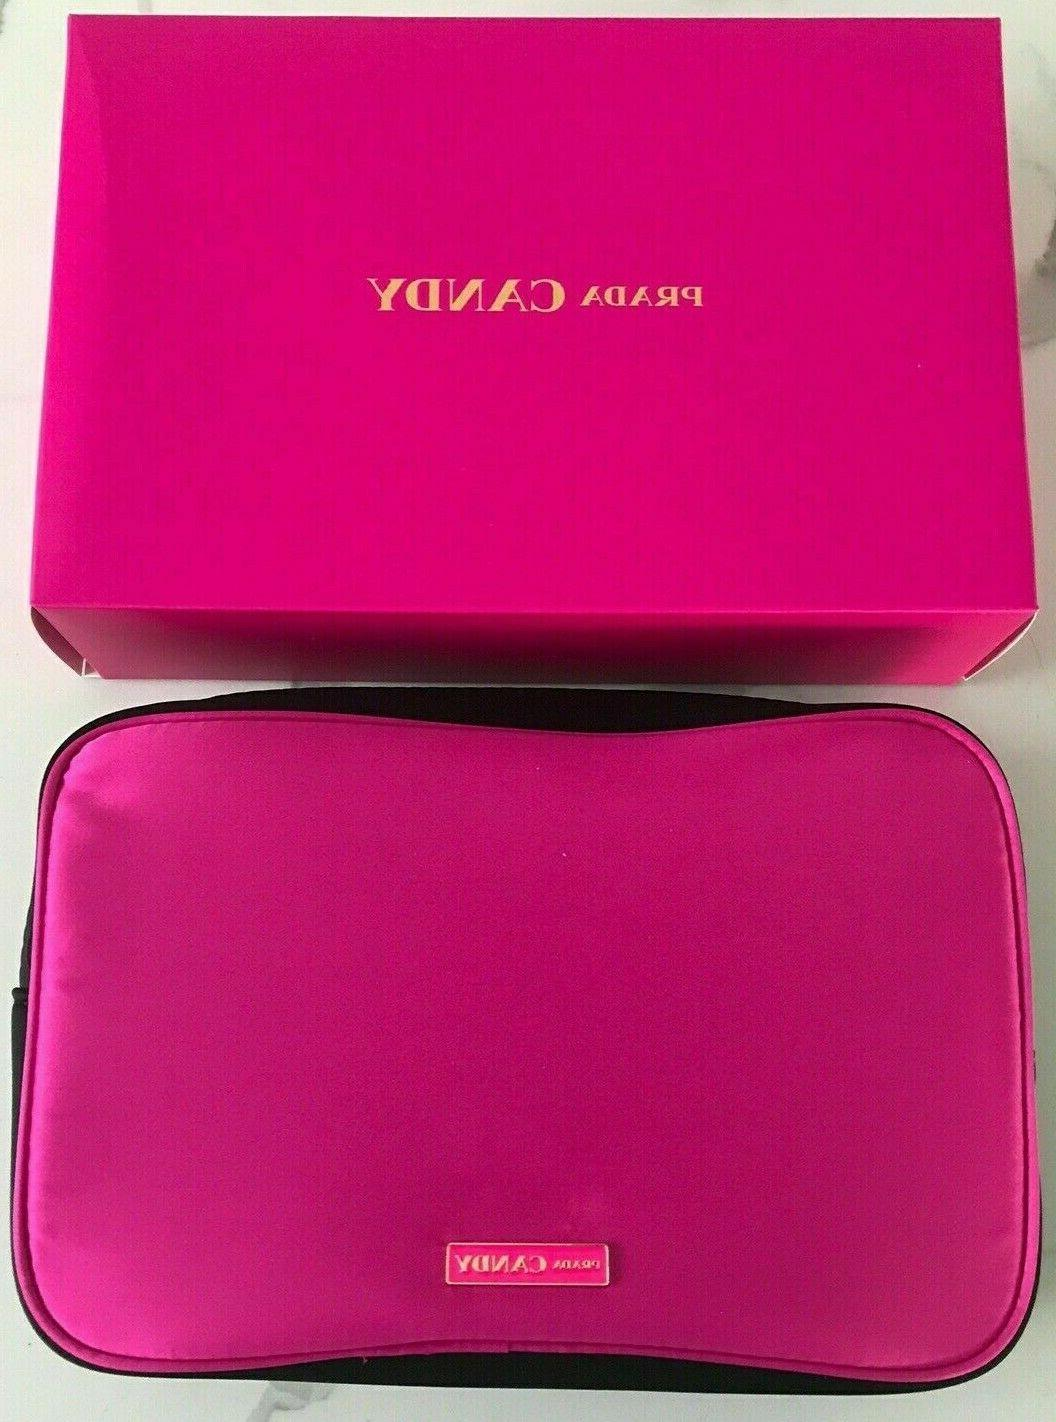 Prada Pouch Makeup Cosmetic Candy Perfume Pink/Gold NEW